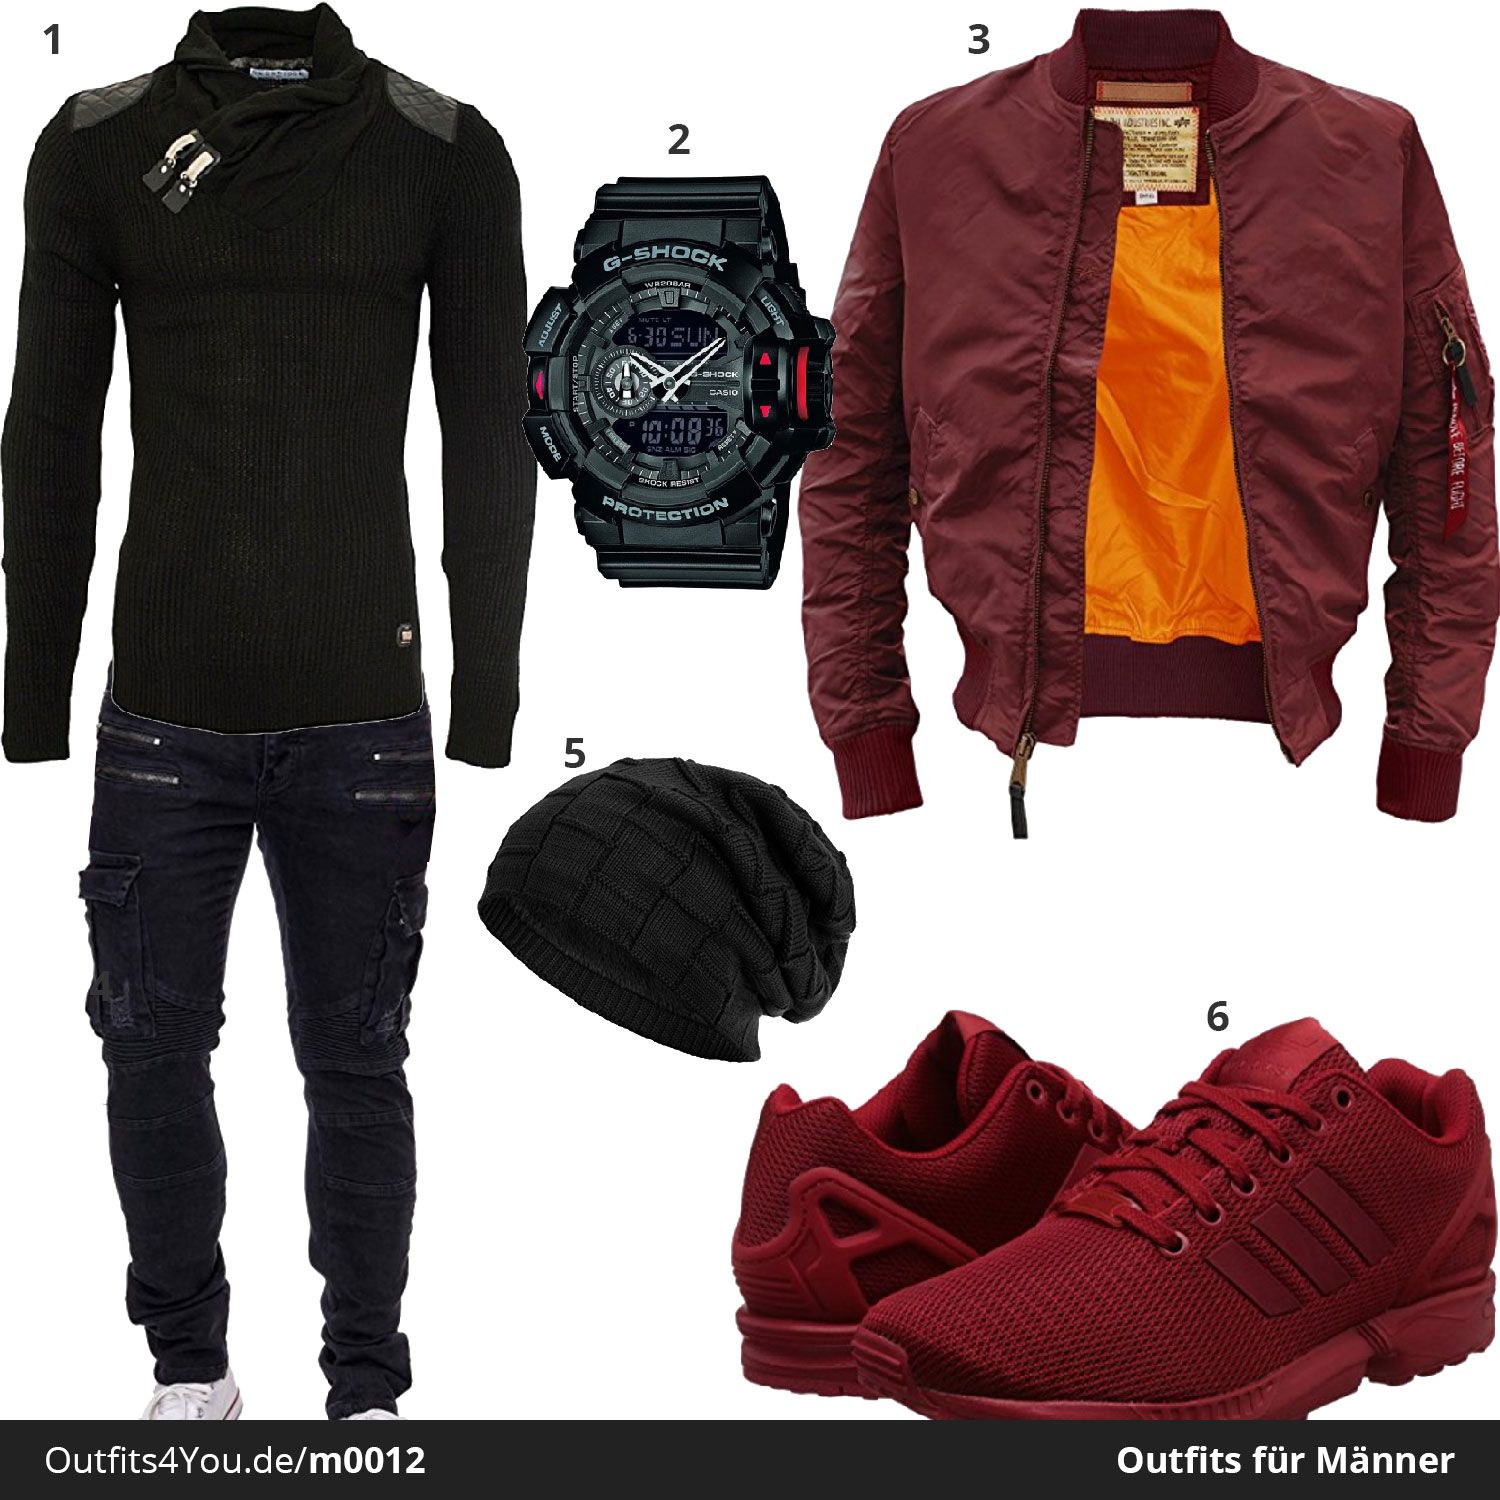 cooler herren outfit in schwarz und dunkelrot mit alpha industries jacke g shock armbanduhr. Black Bedroom Furniture Sets. Home Design Ideas